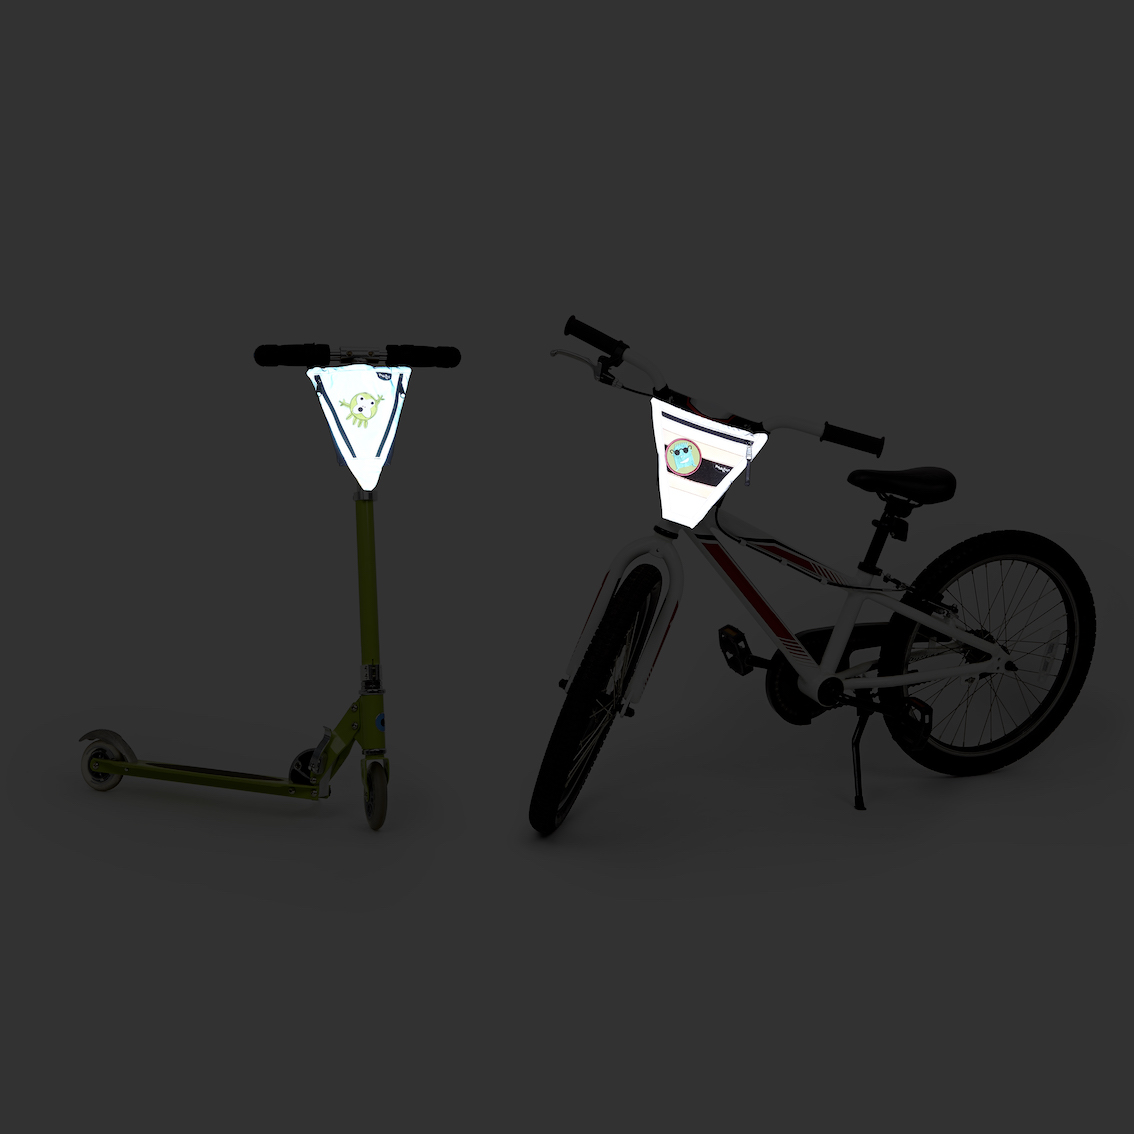 PunkinPies on Scooter and Bicycle in the dark